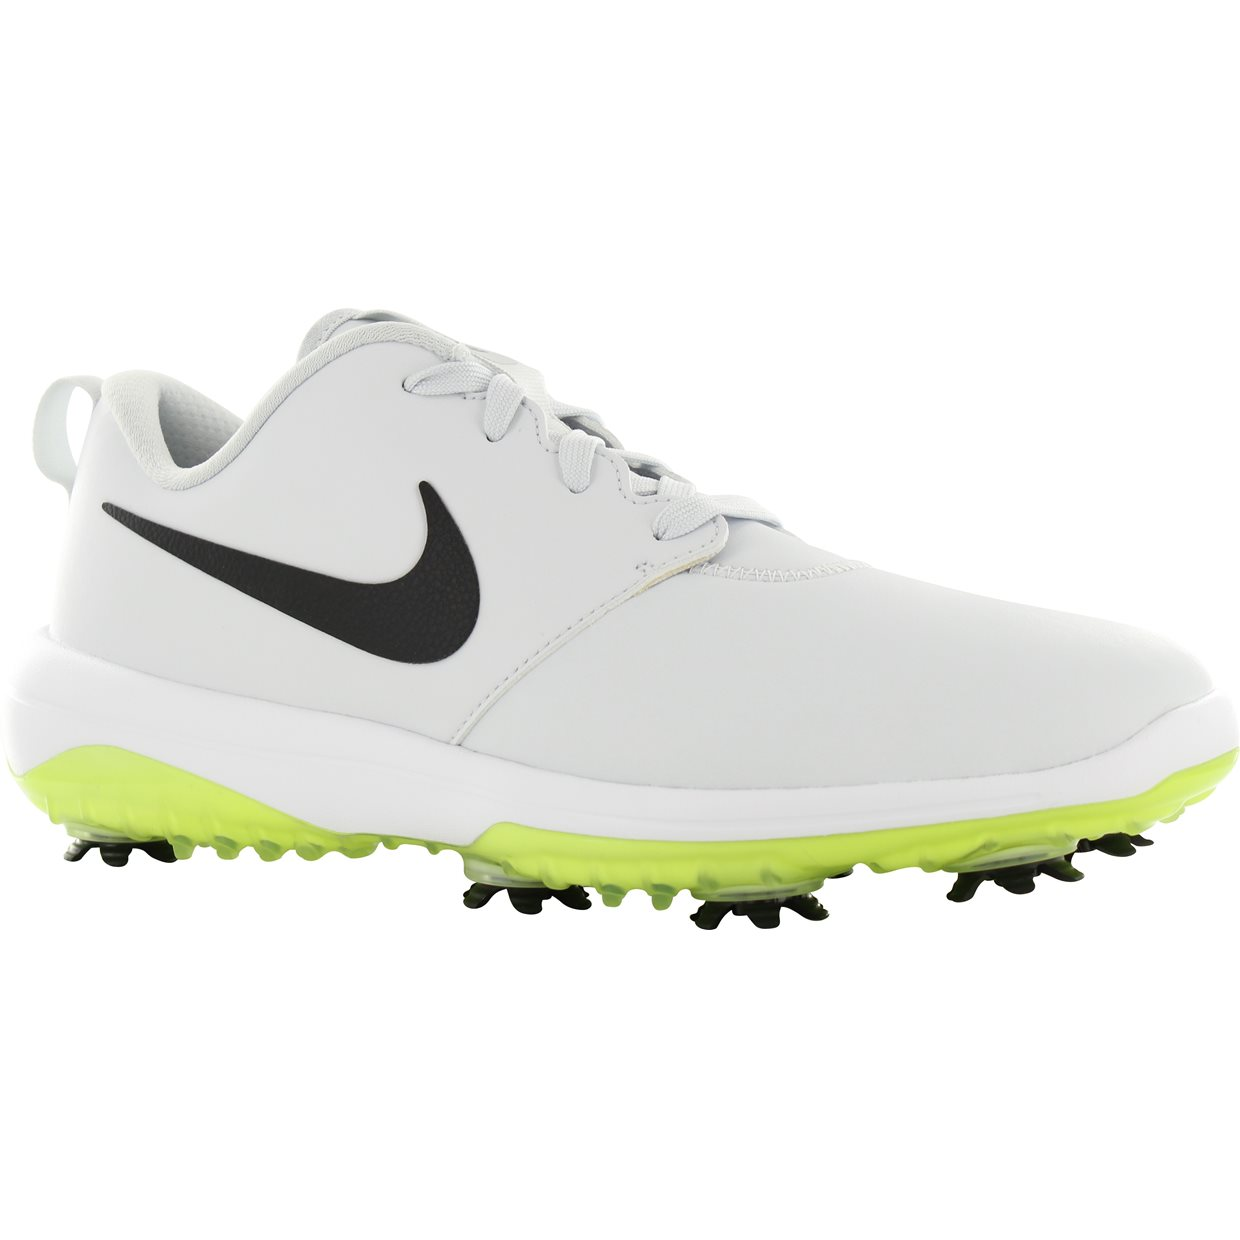 46b9317698b0 Nike Roshe G Tour Golf Shoe in Pure Platinum White Volt. No reviews.   110.00. In Stock